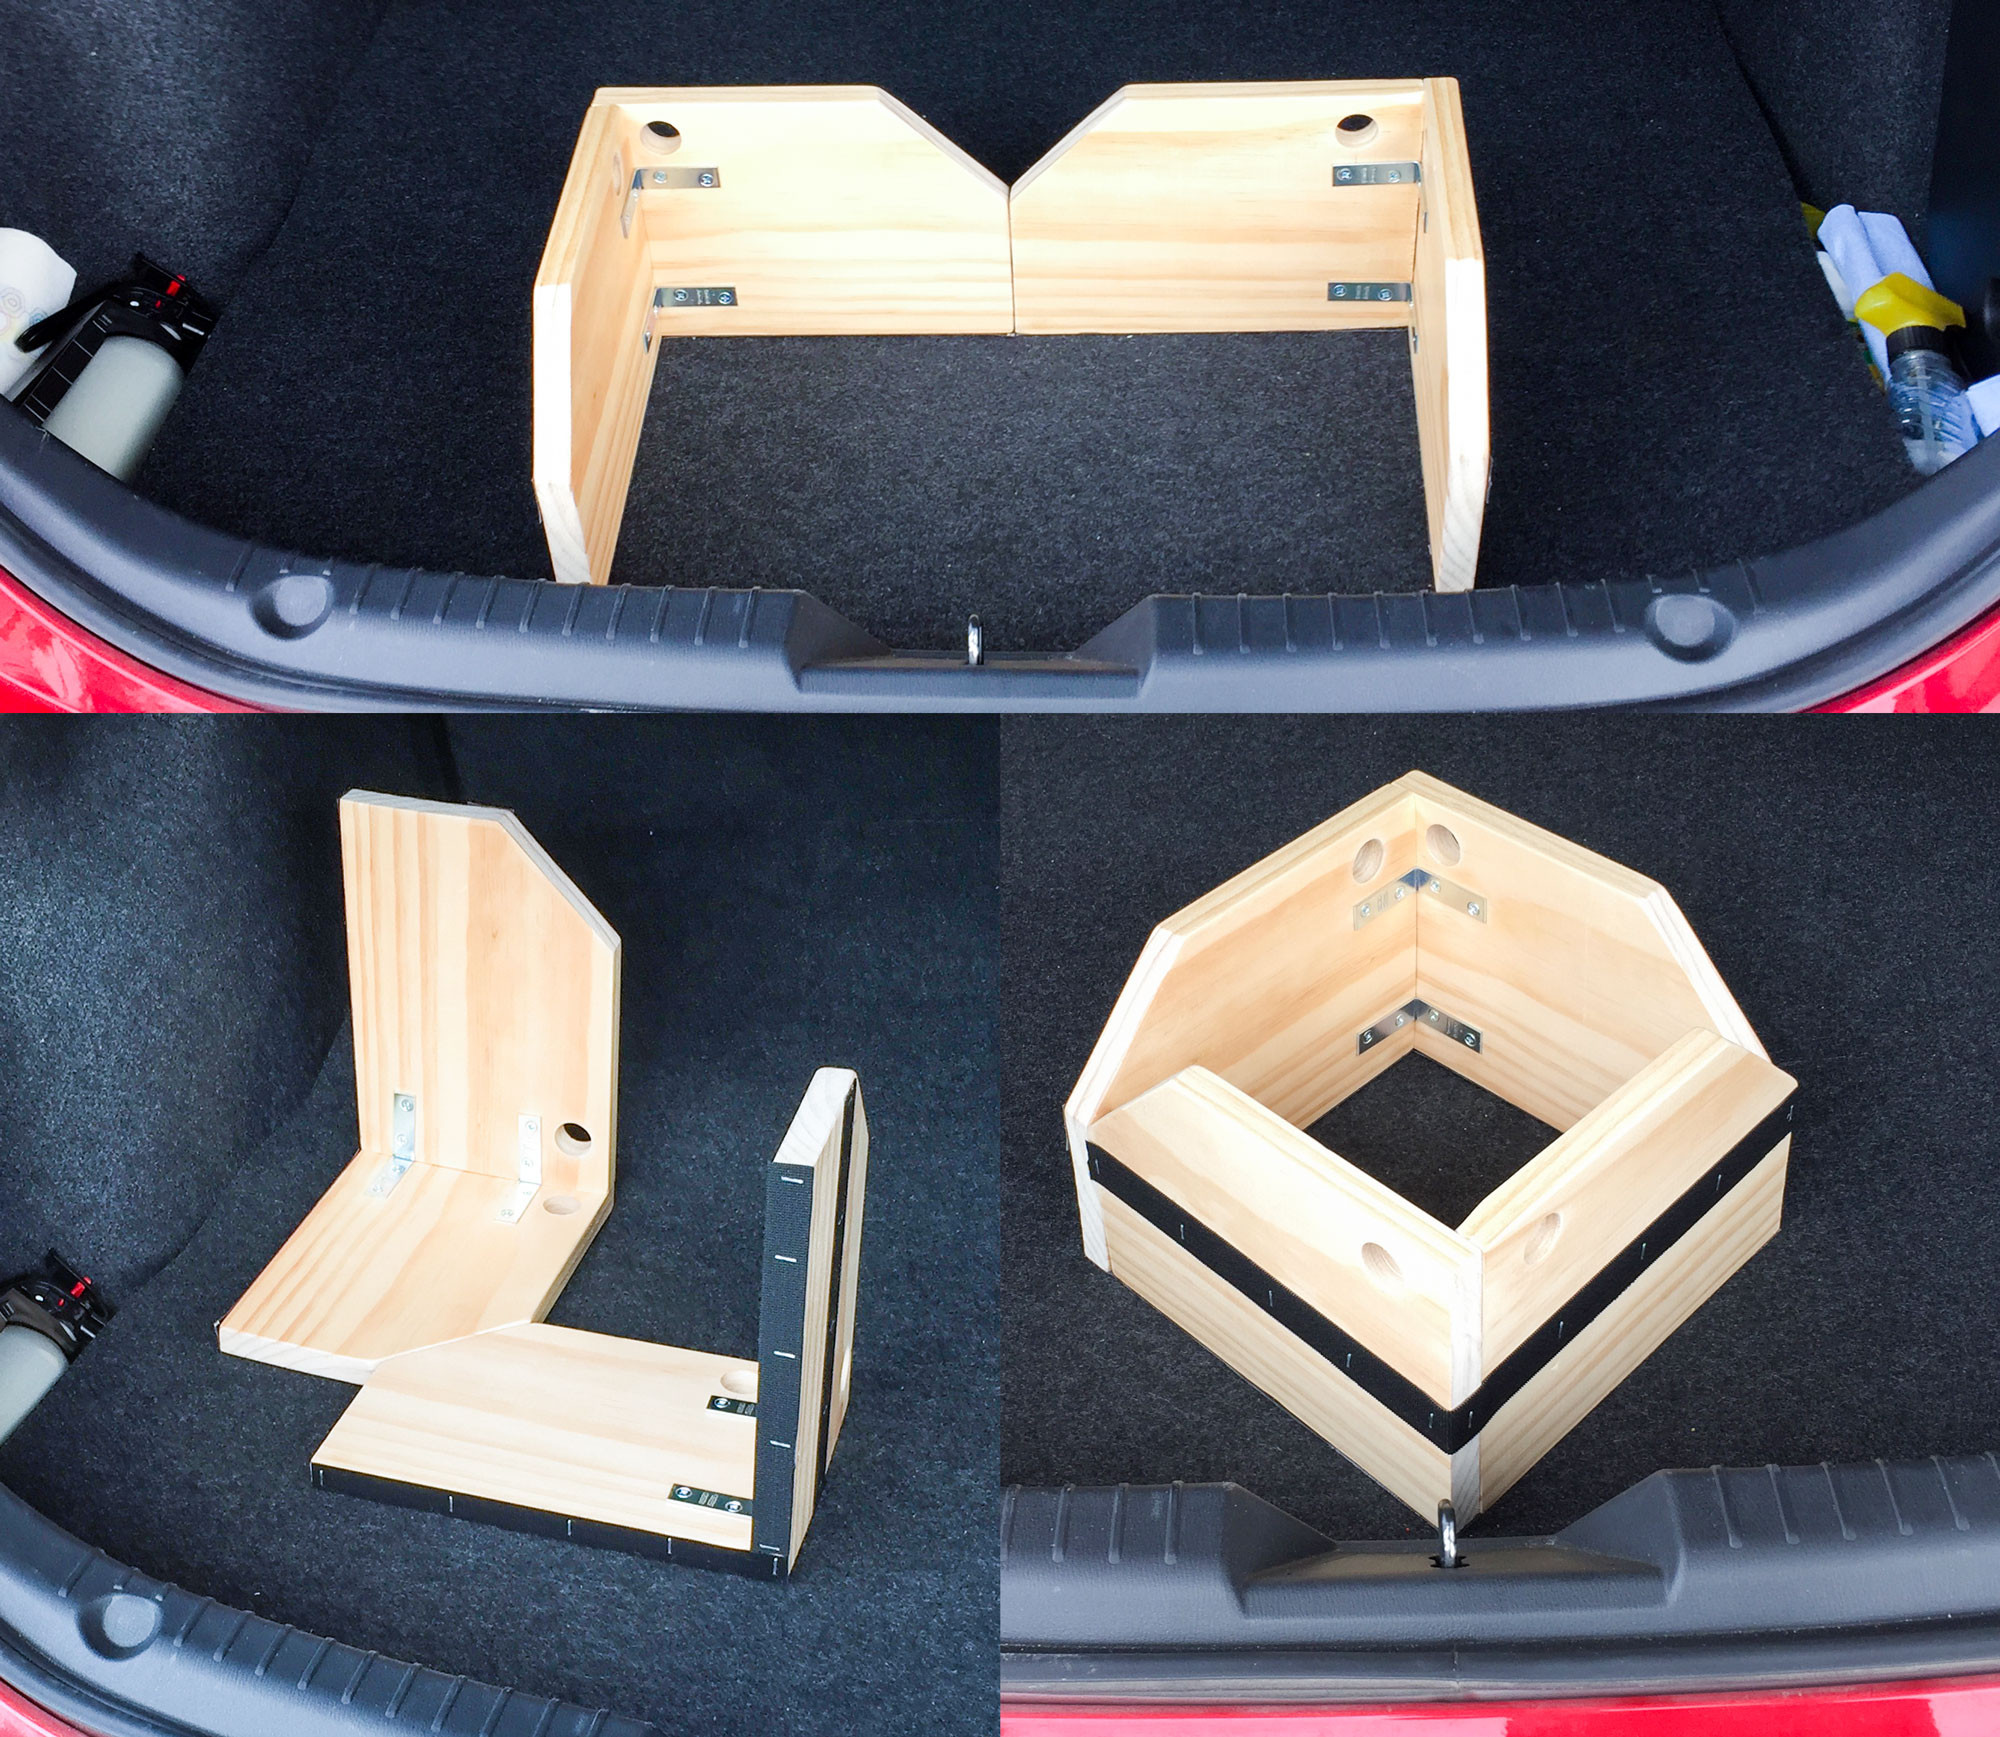 Best ideas about DIY Car Trunk Organizer . Save or Pin Grathio Labs Now.